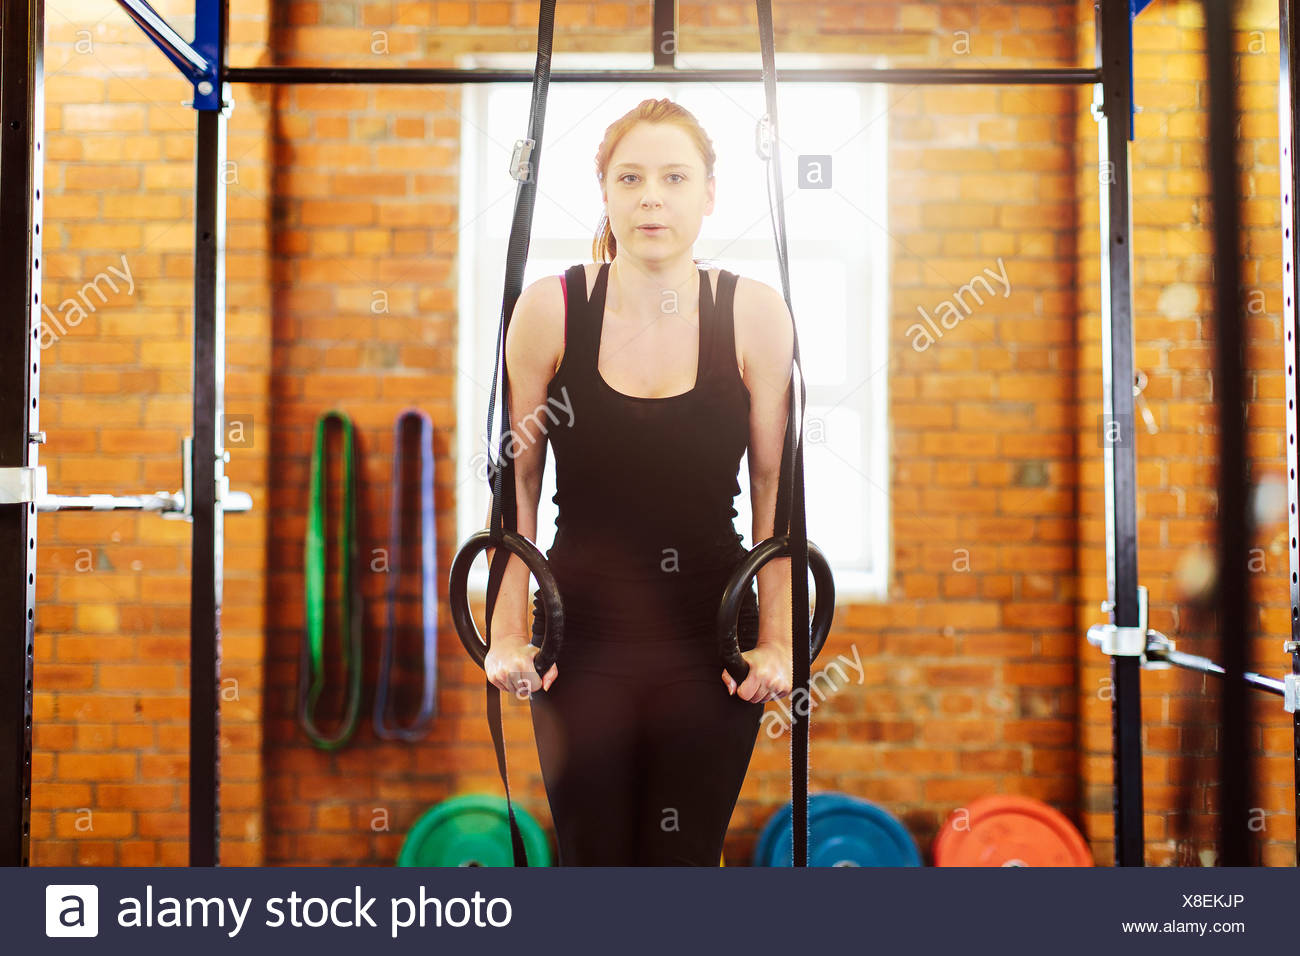 Woman pulling suspended rings in gym - Stock Image